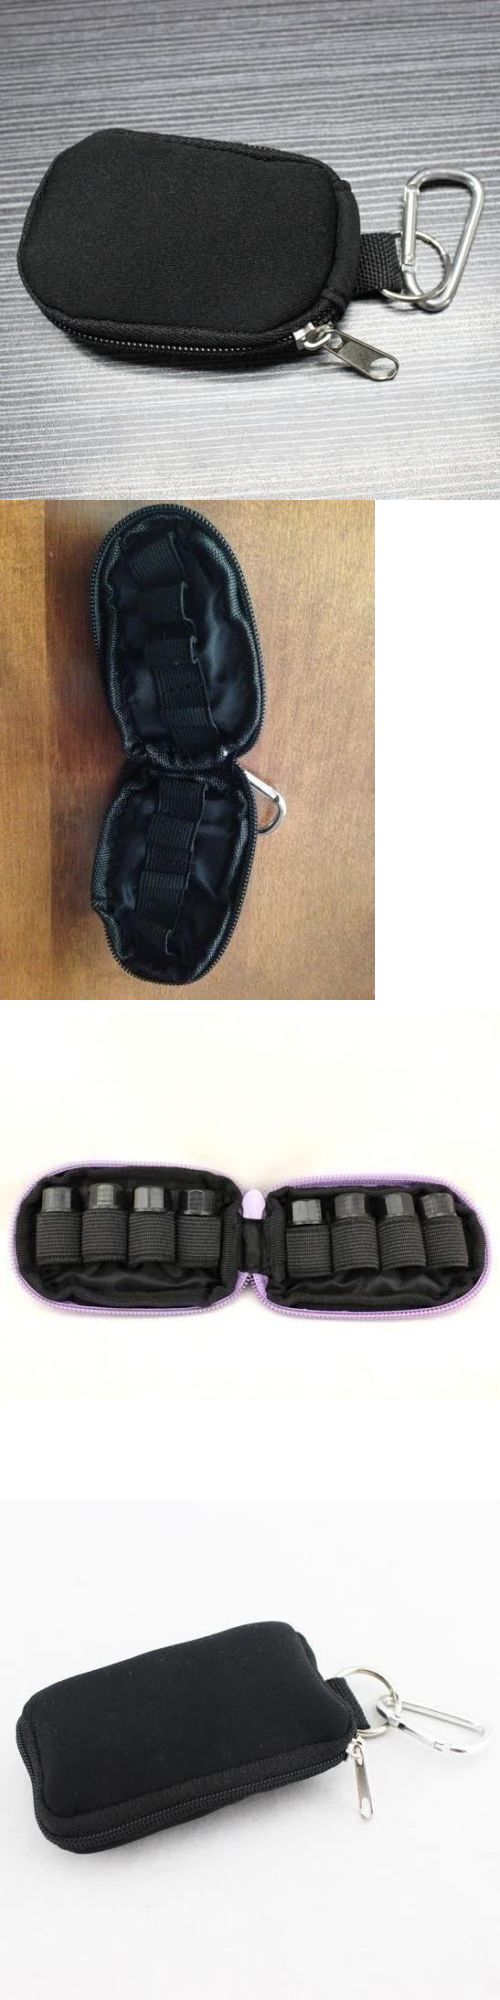 wholesale Other Whlsl Health and Beauty: New 25X Keychain Pouch Black Fits 8X Essential Oil 2Ml Vials Incld No Logo -> BUY IT NOW ONLY: $170 on eBay!